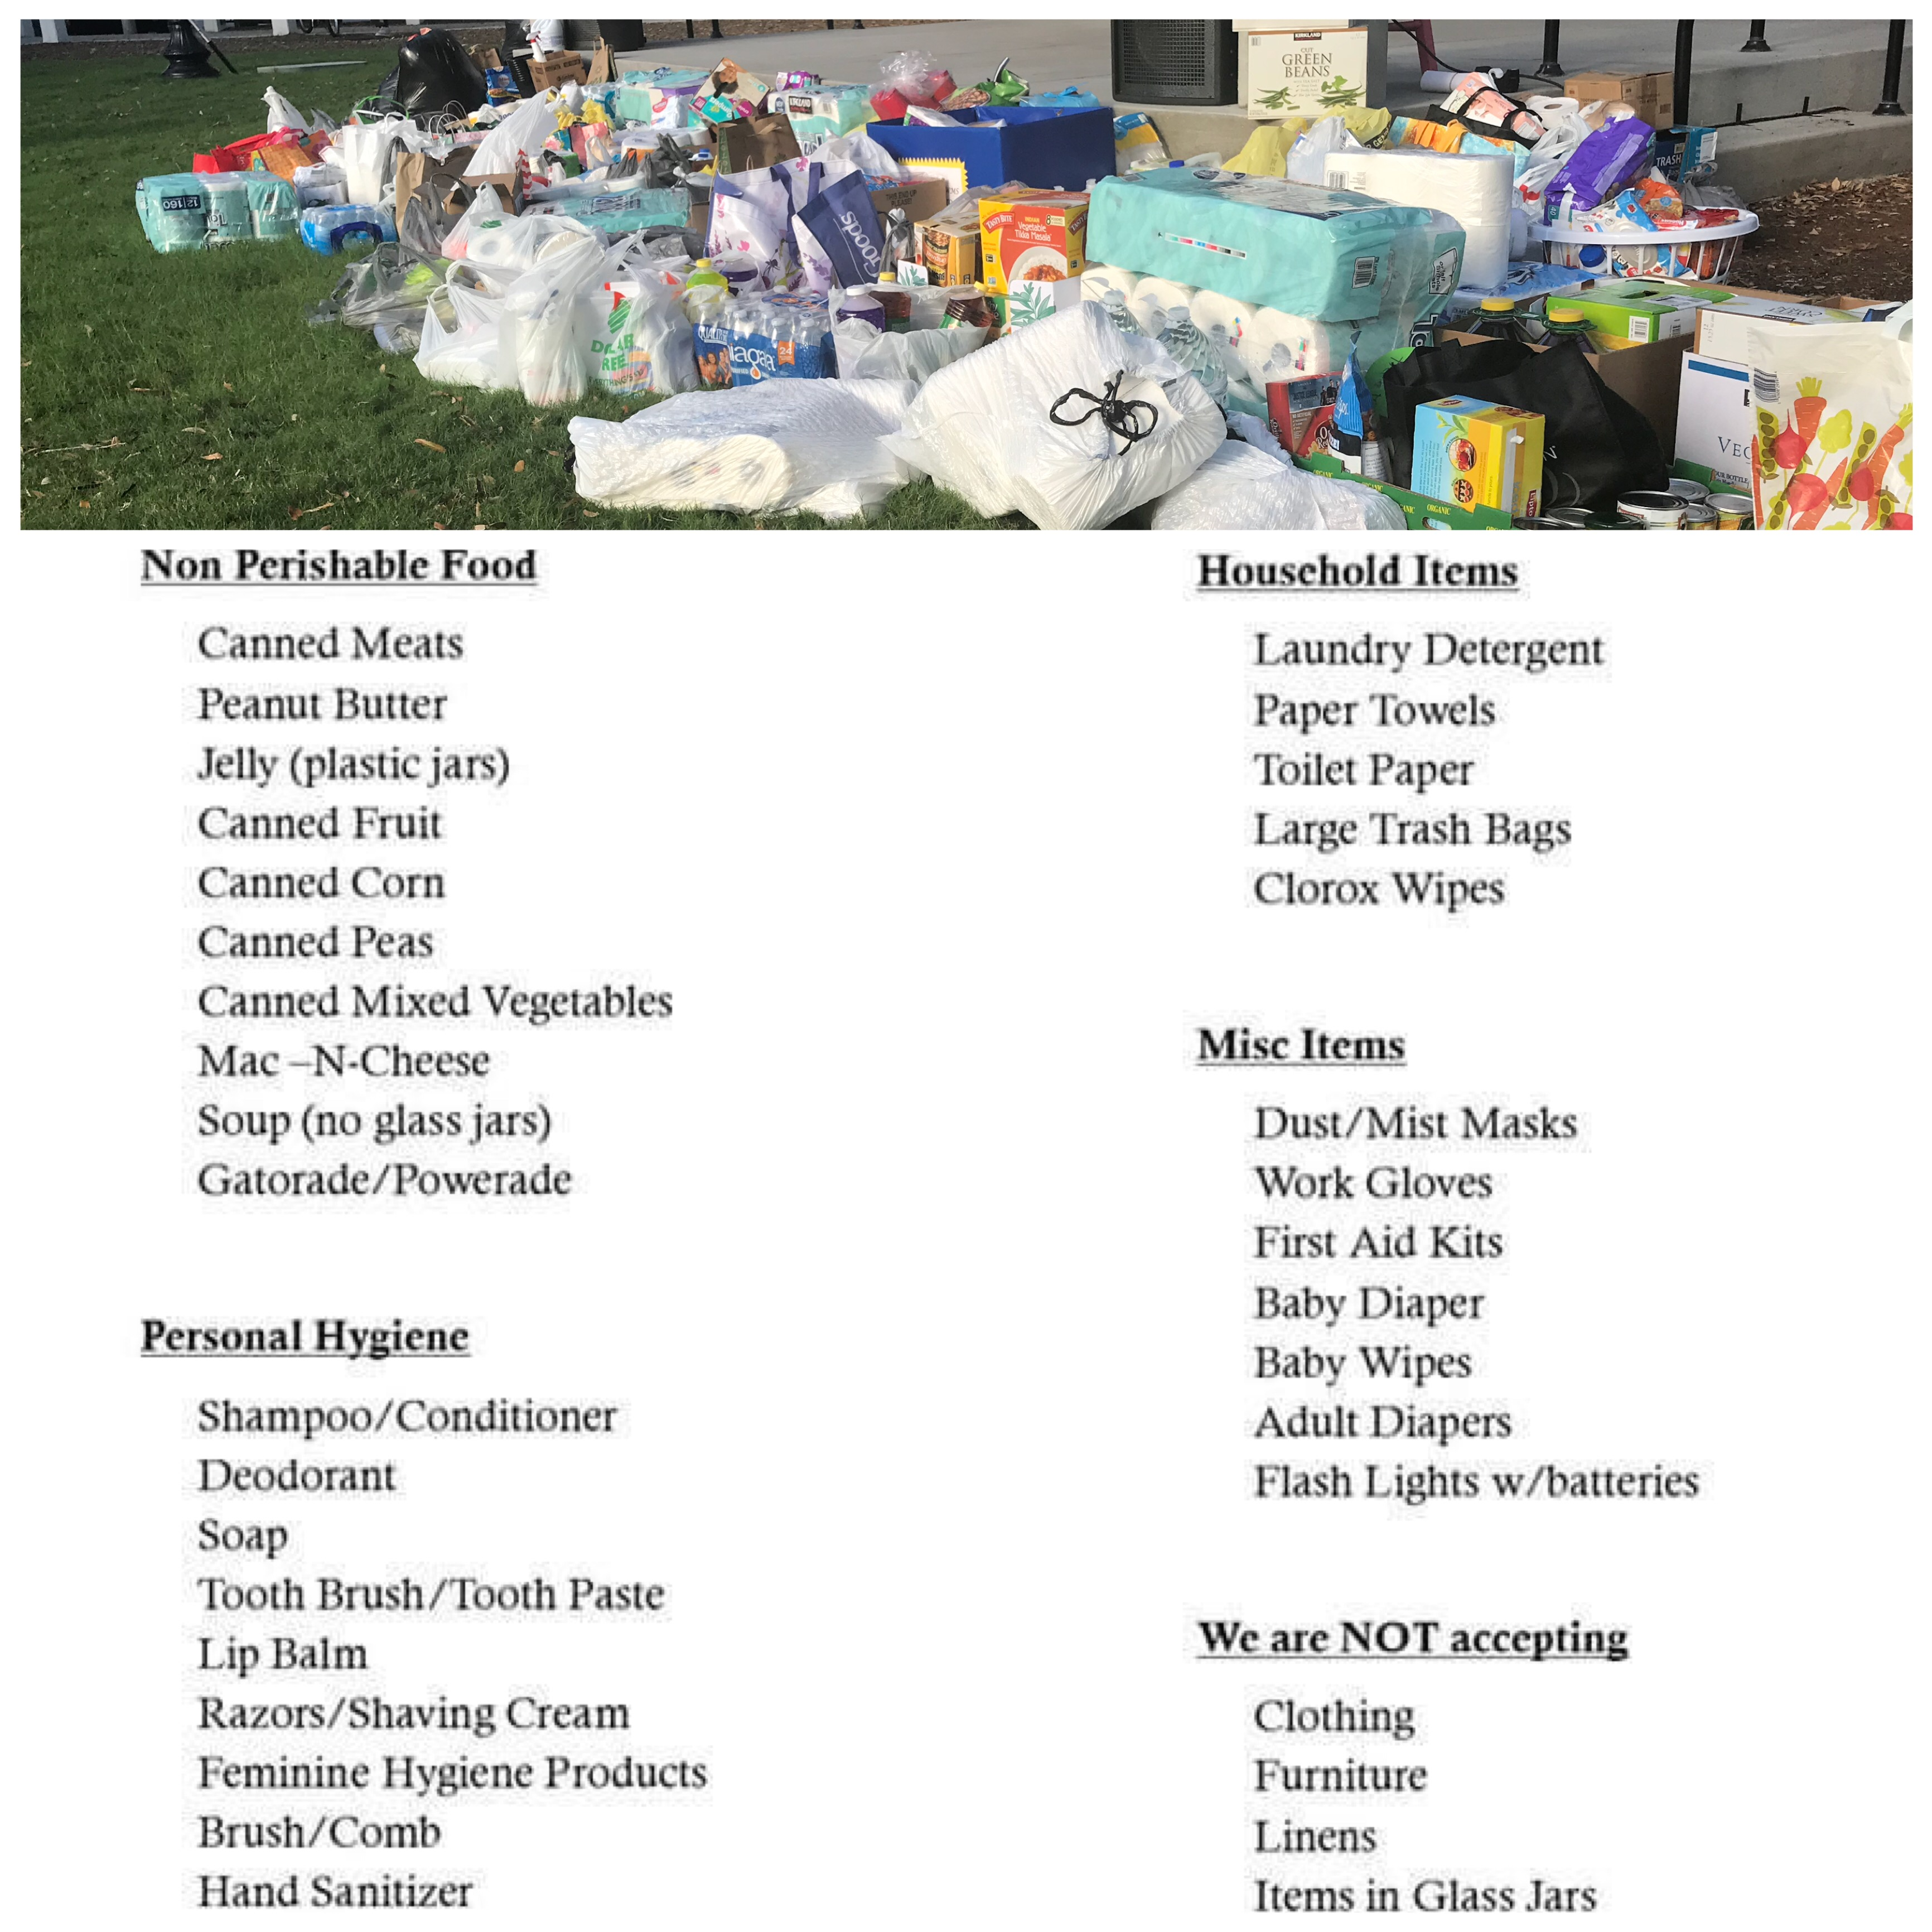 flood relief drop off locations